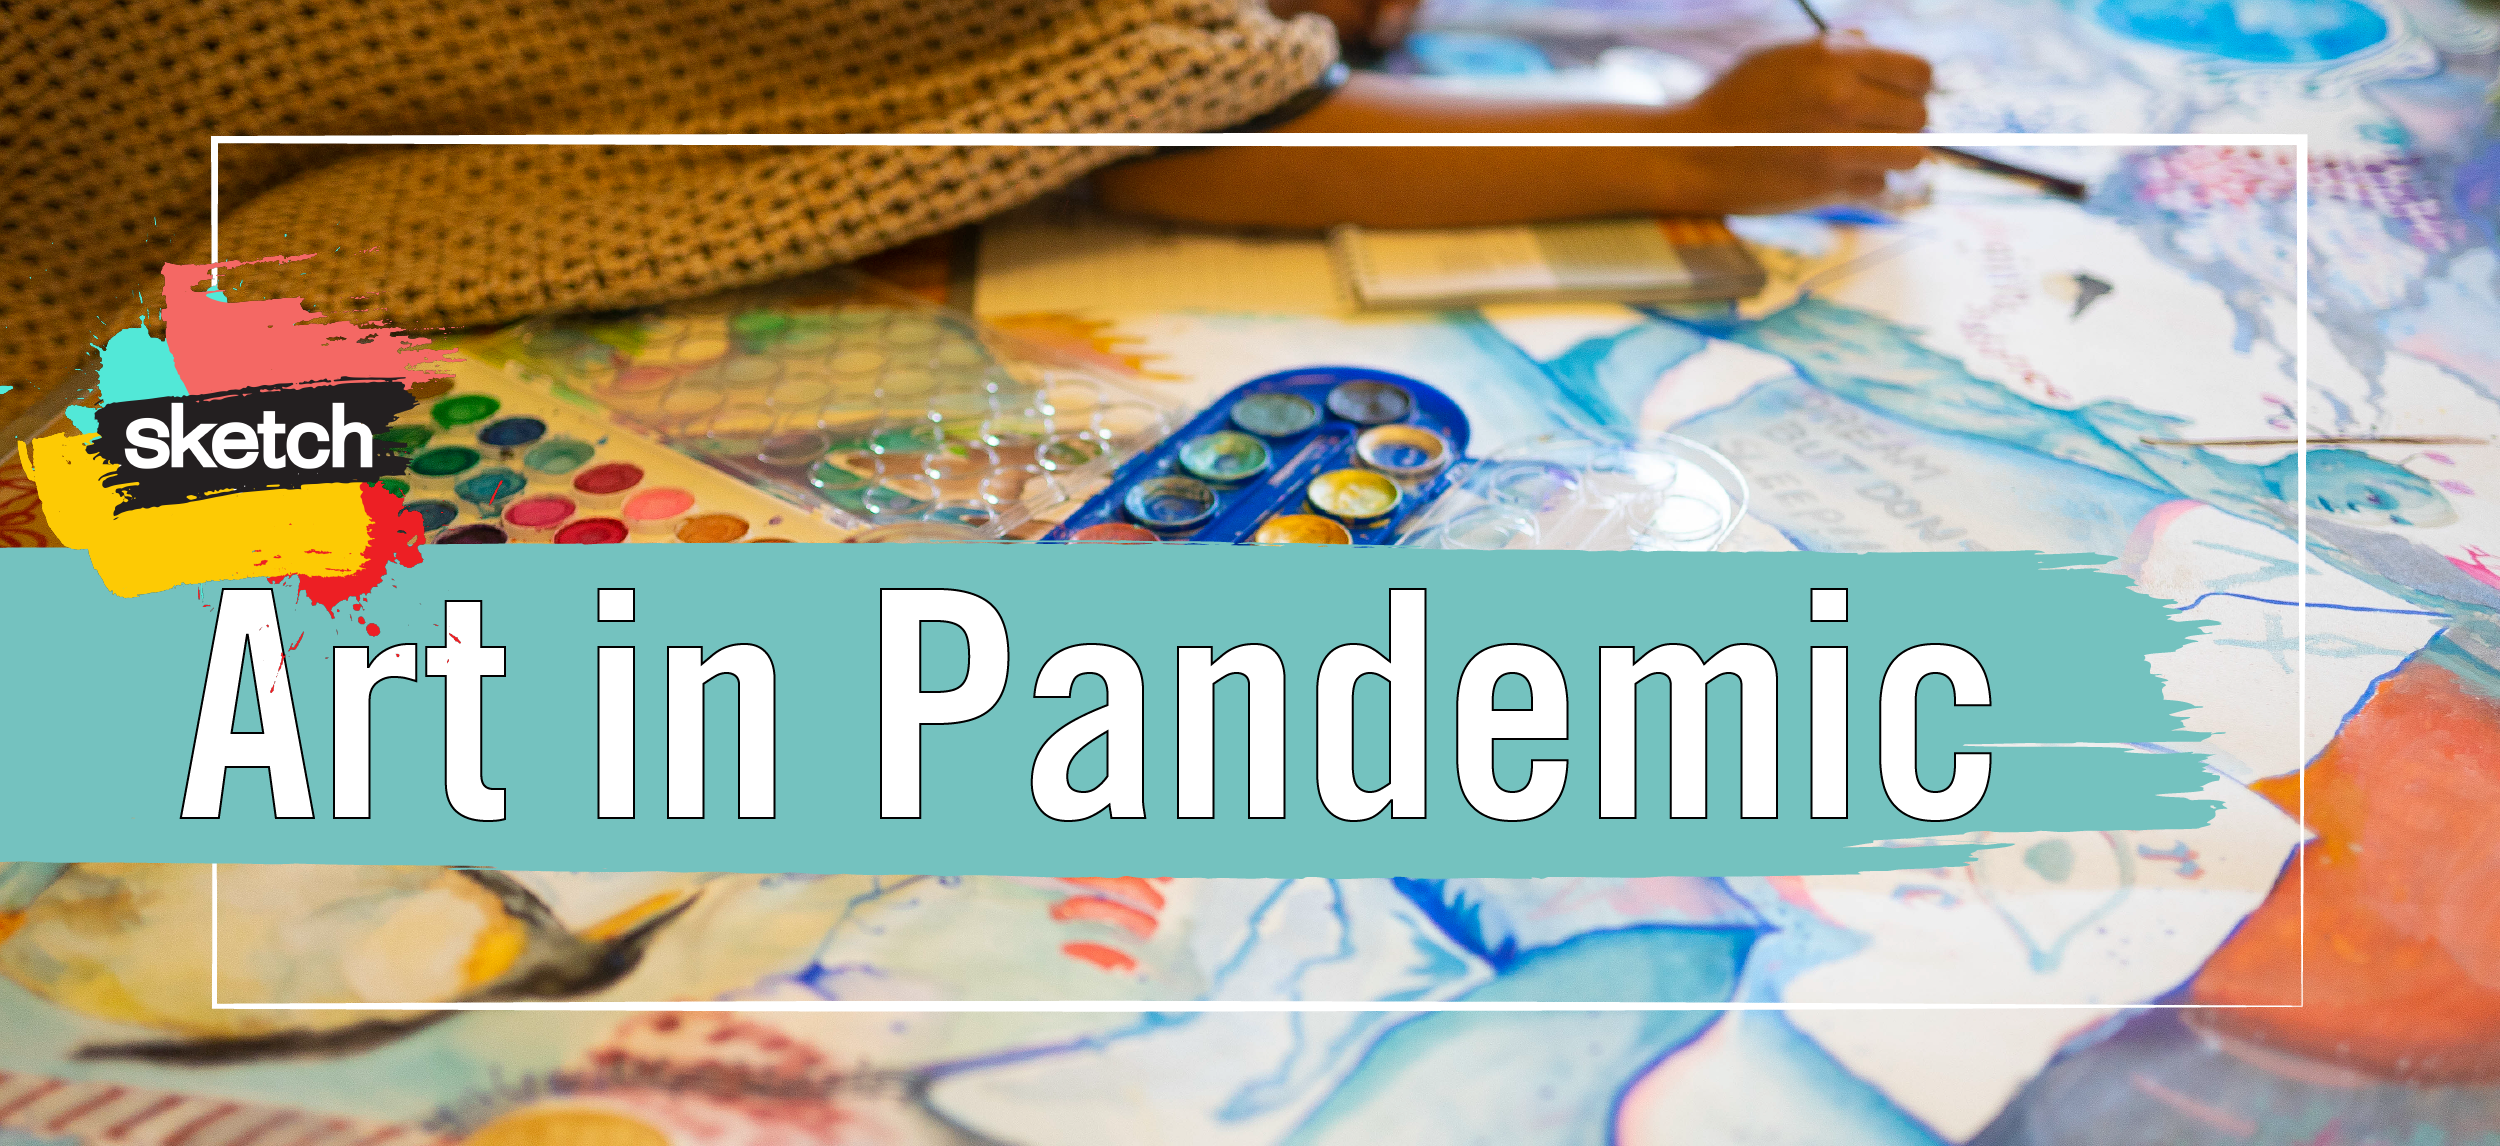 Art In Pandemic Header 2